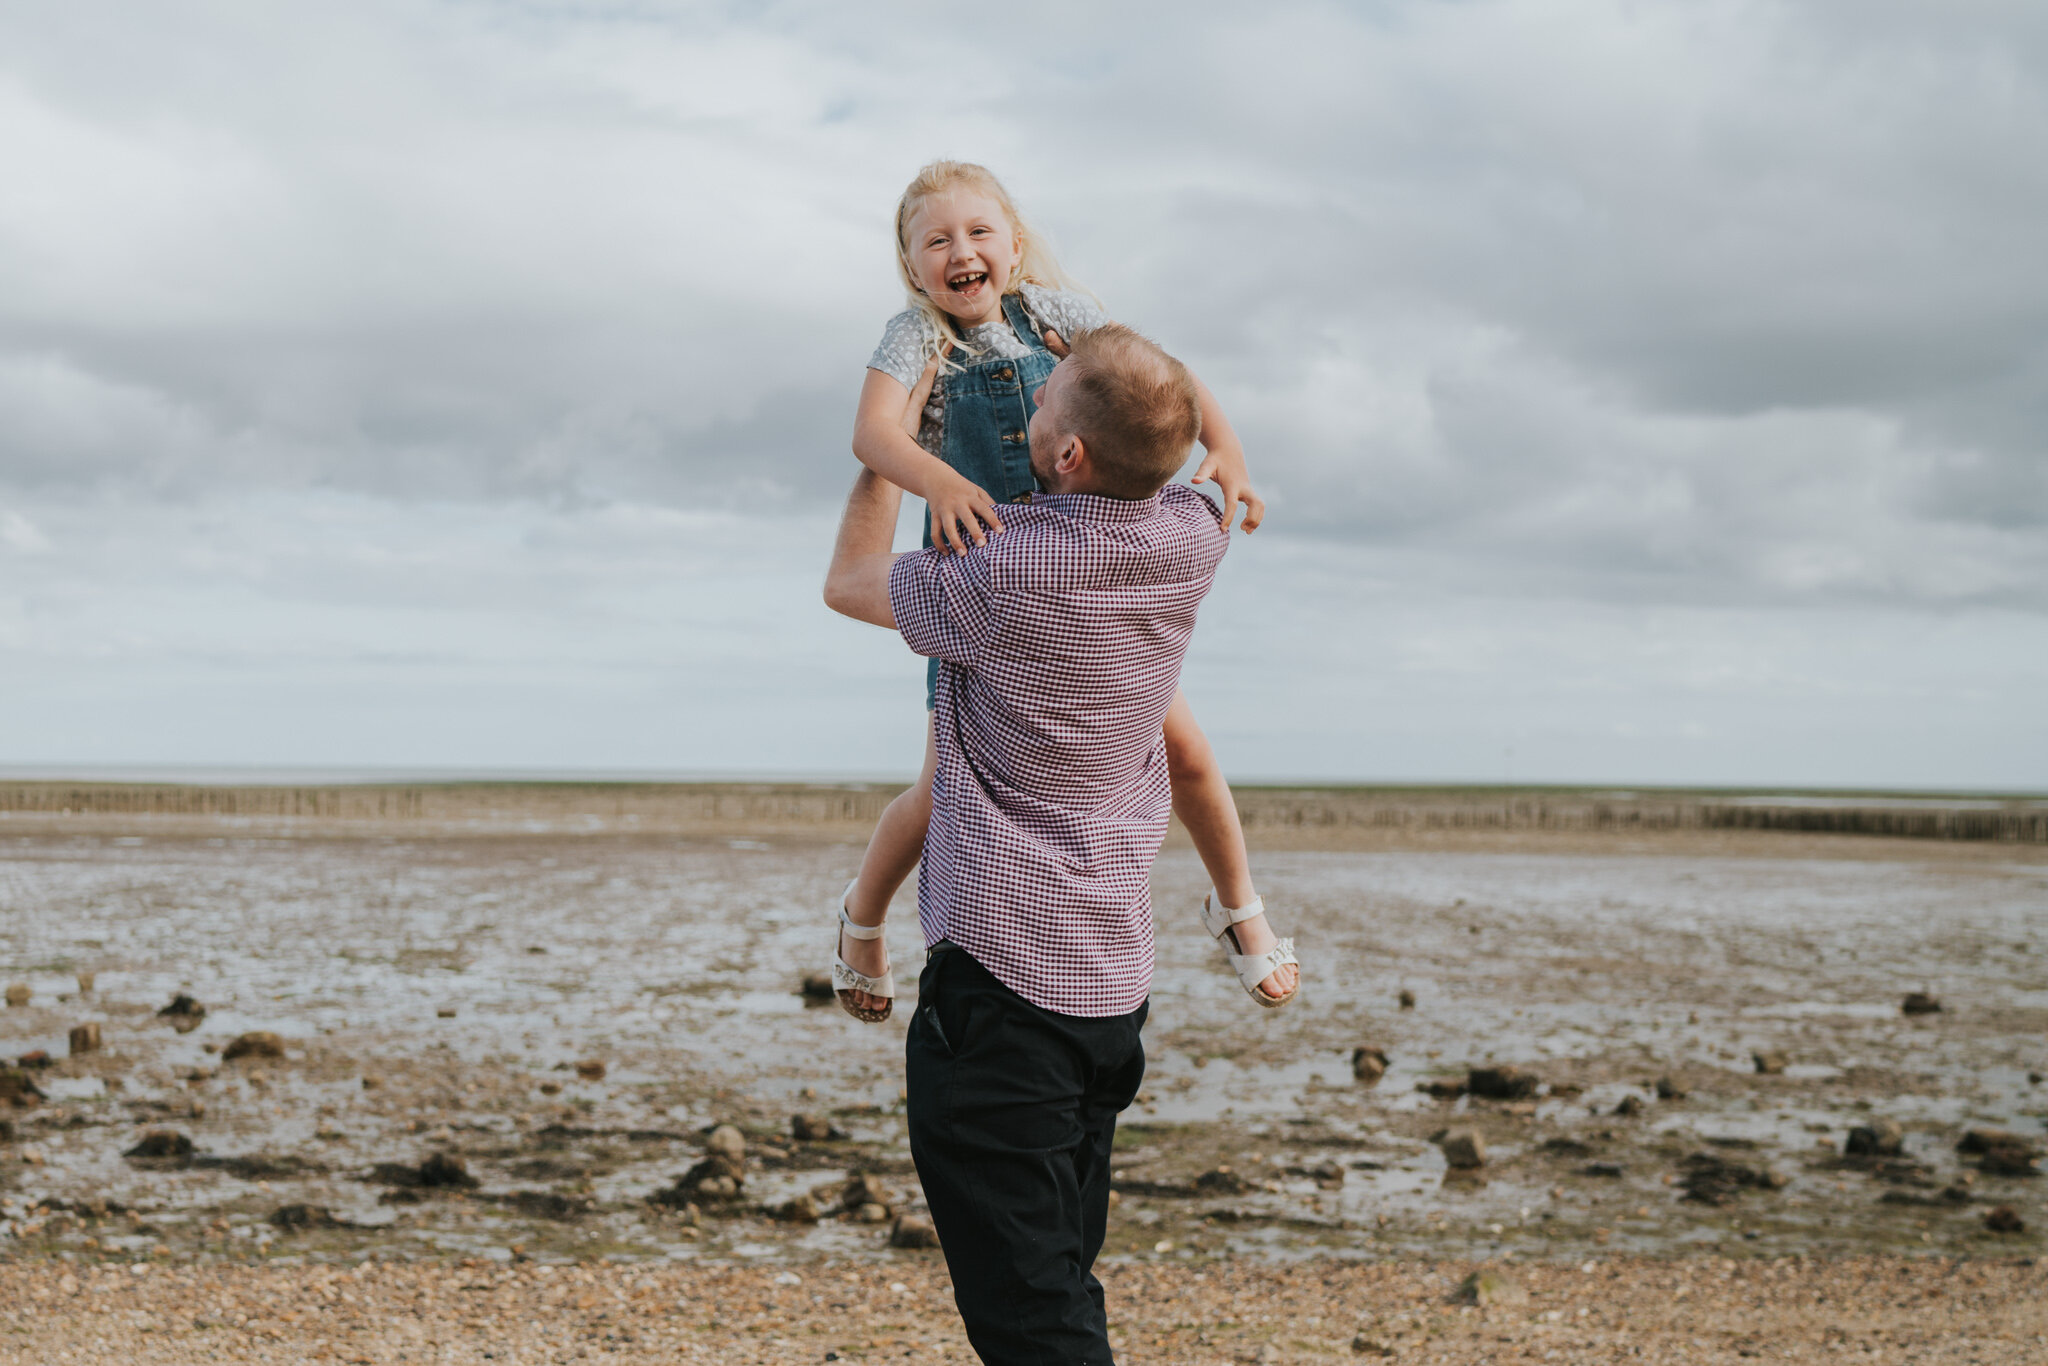 celebratory-beach-family-session-thomson-family-cudmore-grove-east-mersea-grace-elizabeth-colchester-essex-devon-suffolk-and-norfolk-alternative-wedding-and-family-photographer (30 of 53).jpg